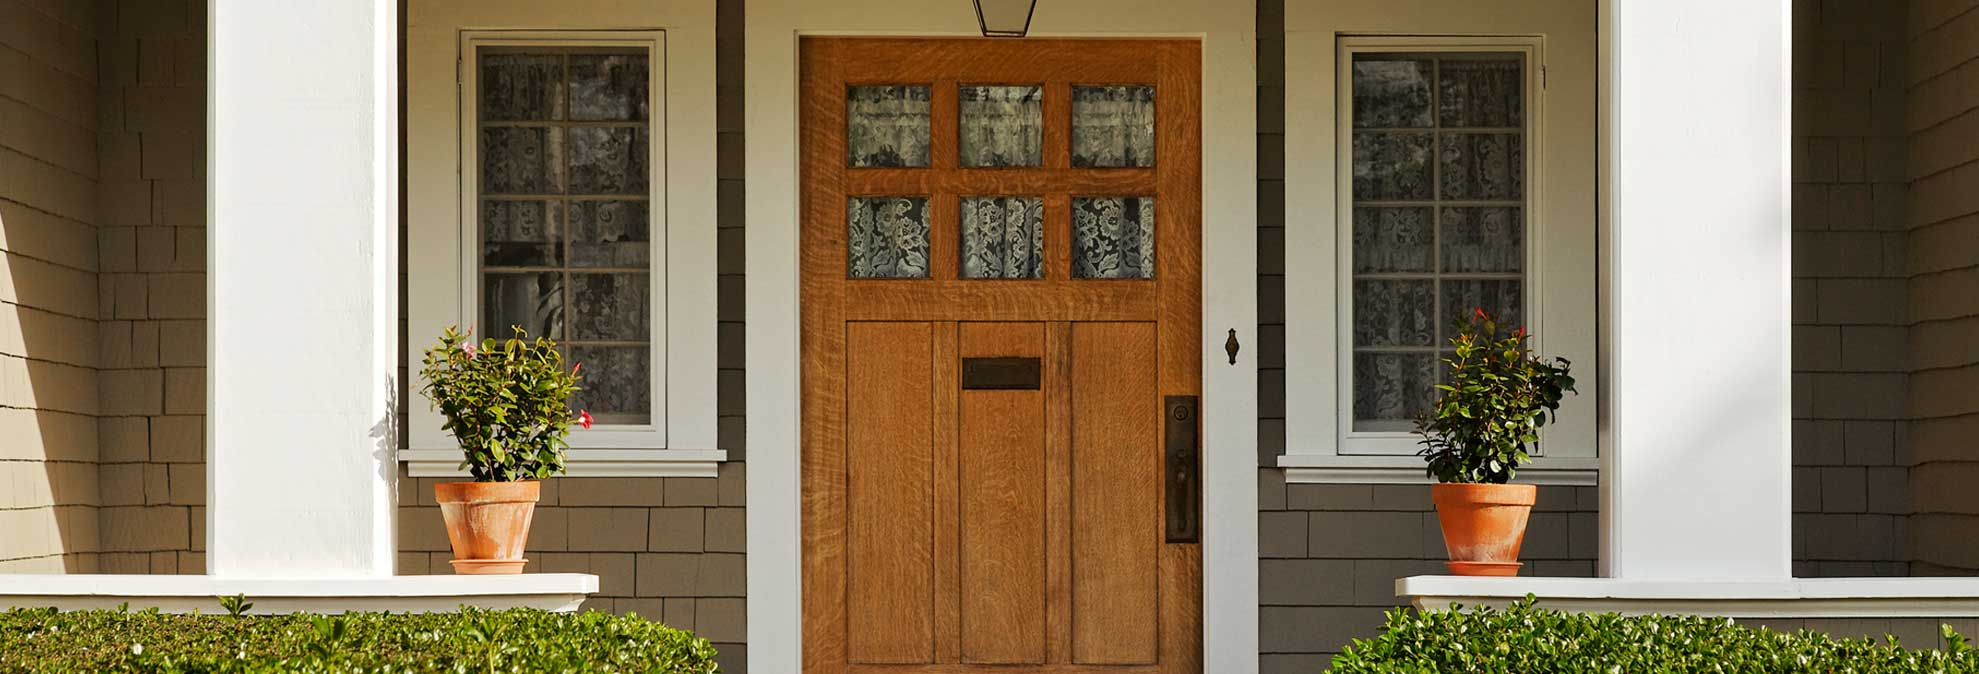 Photos Of Front Doors best entry door buying guide - consumer reports